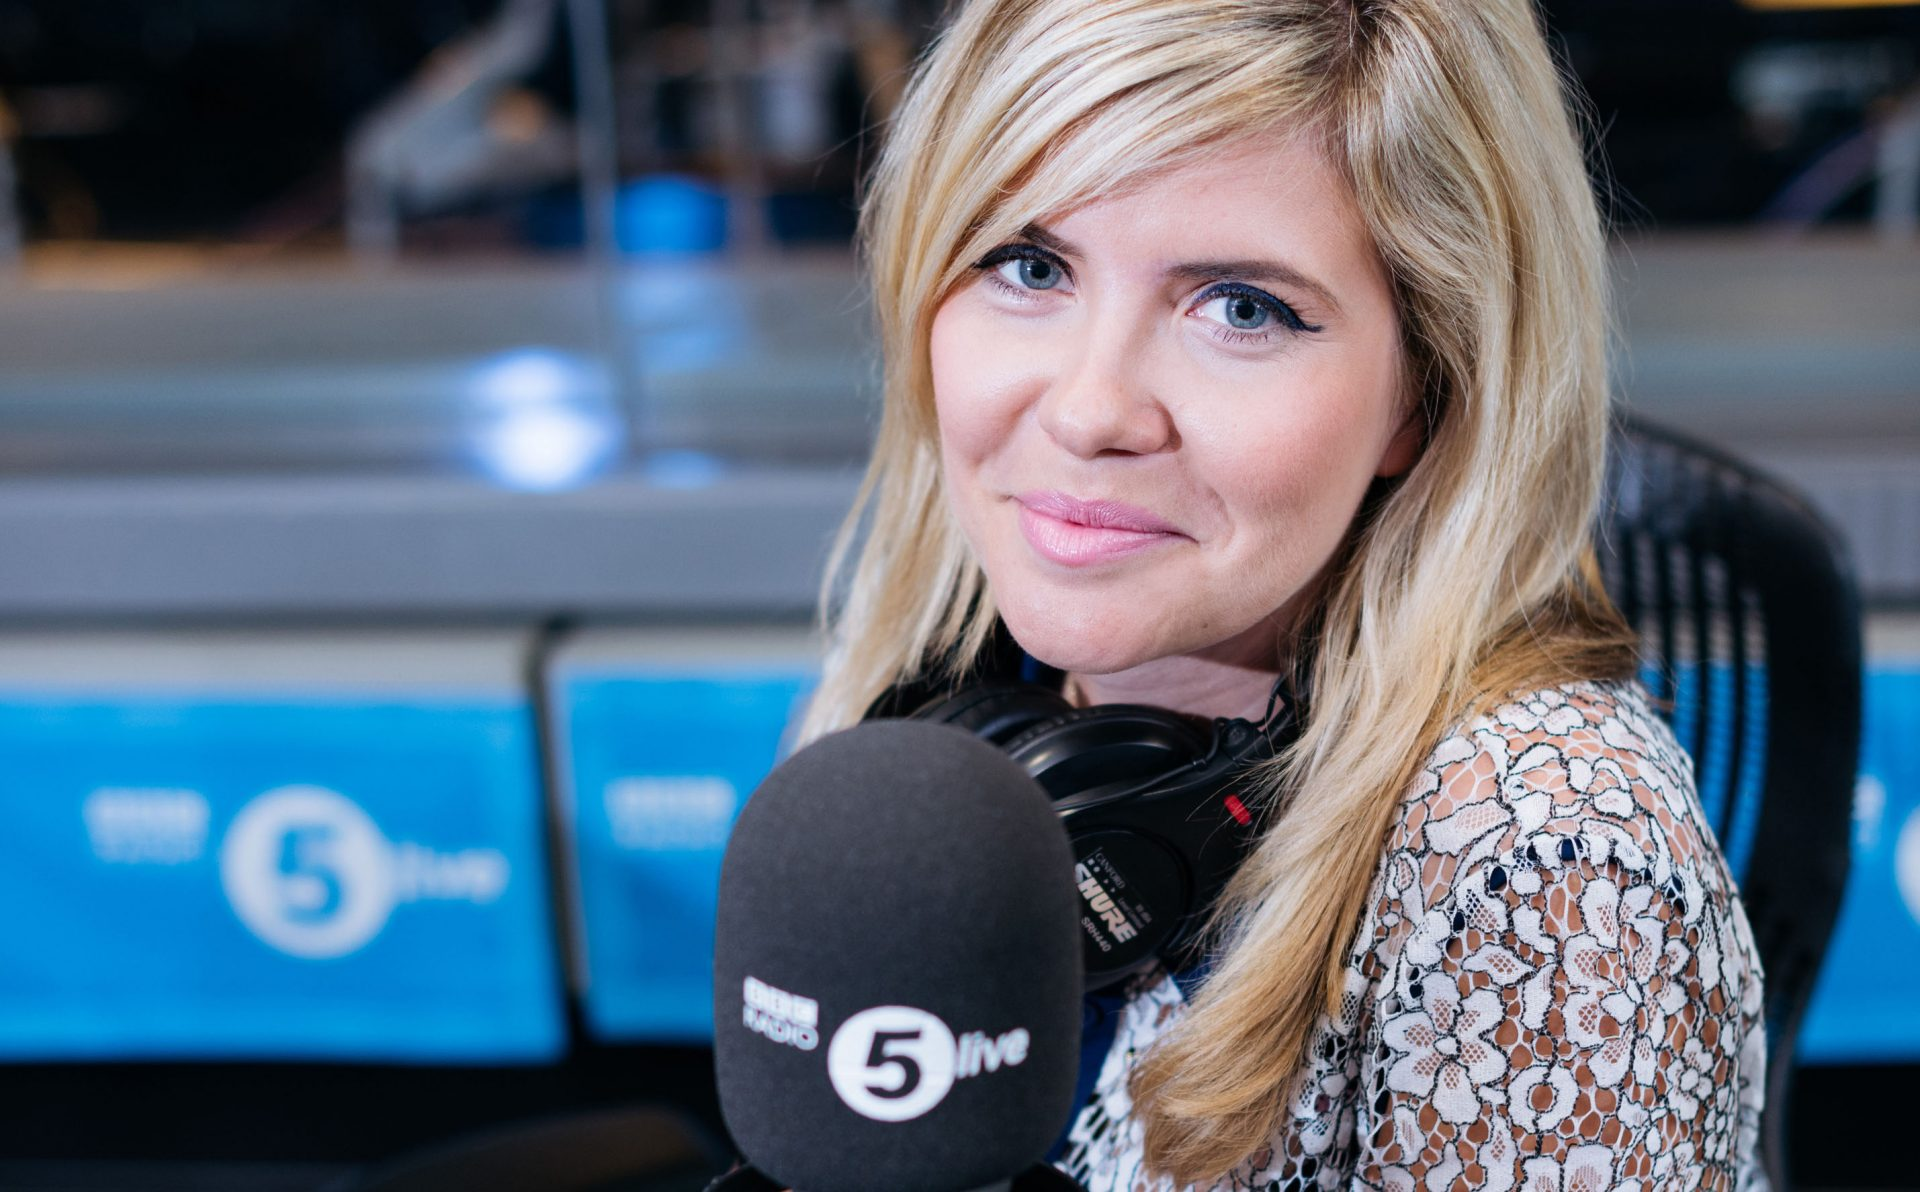 Emma Barnett at BBC Radio 5 Live. Image courtesy BBC.